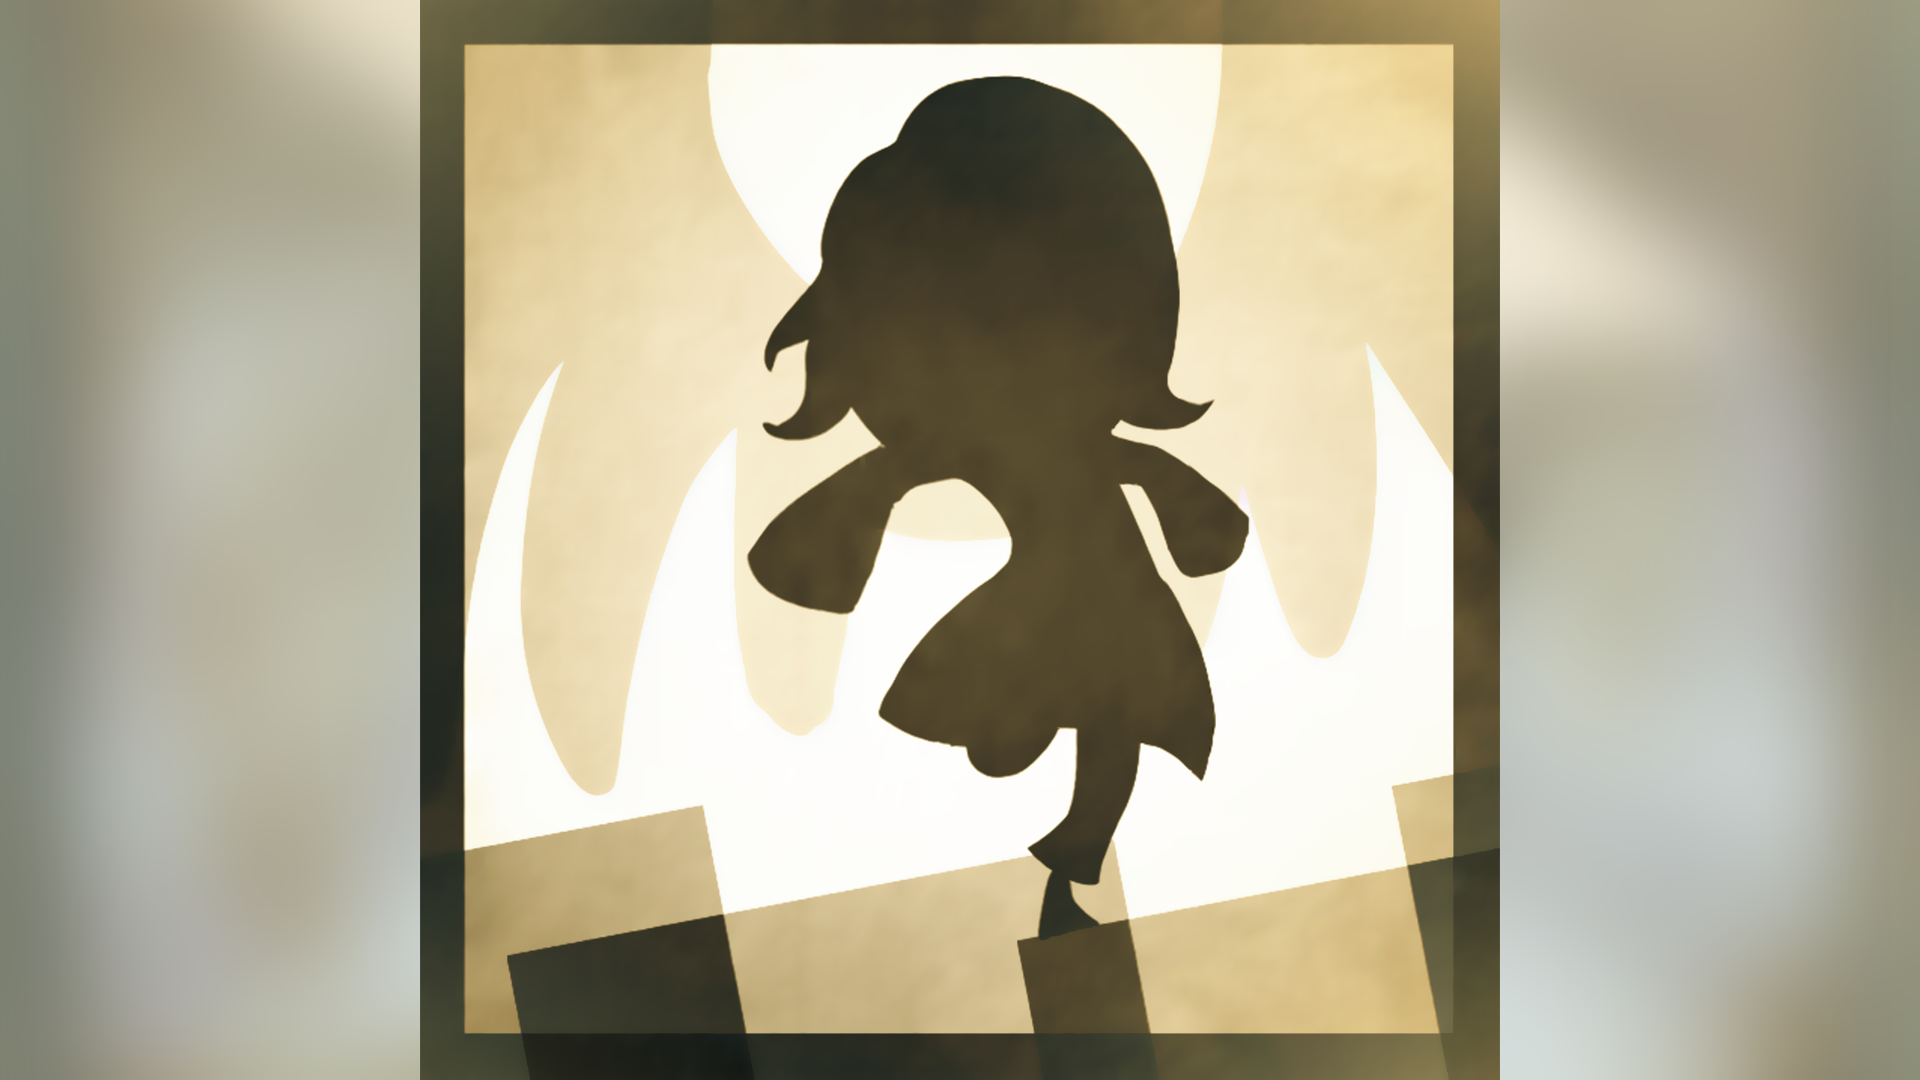 Icon for Leap of faith